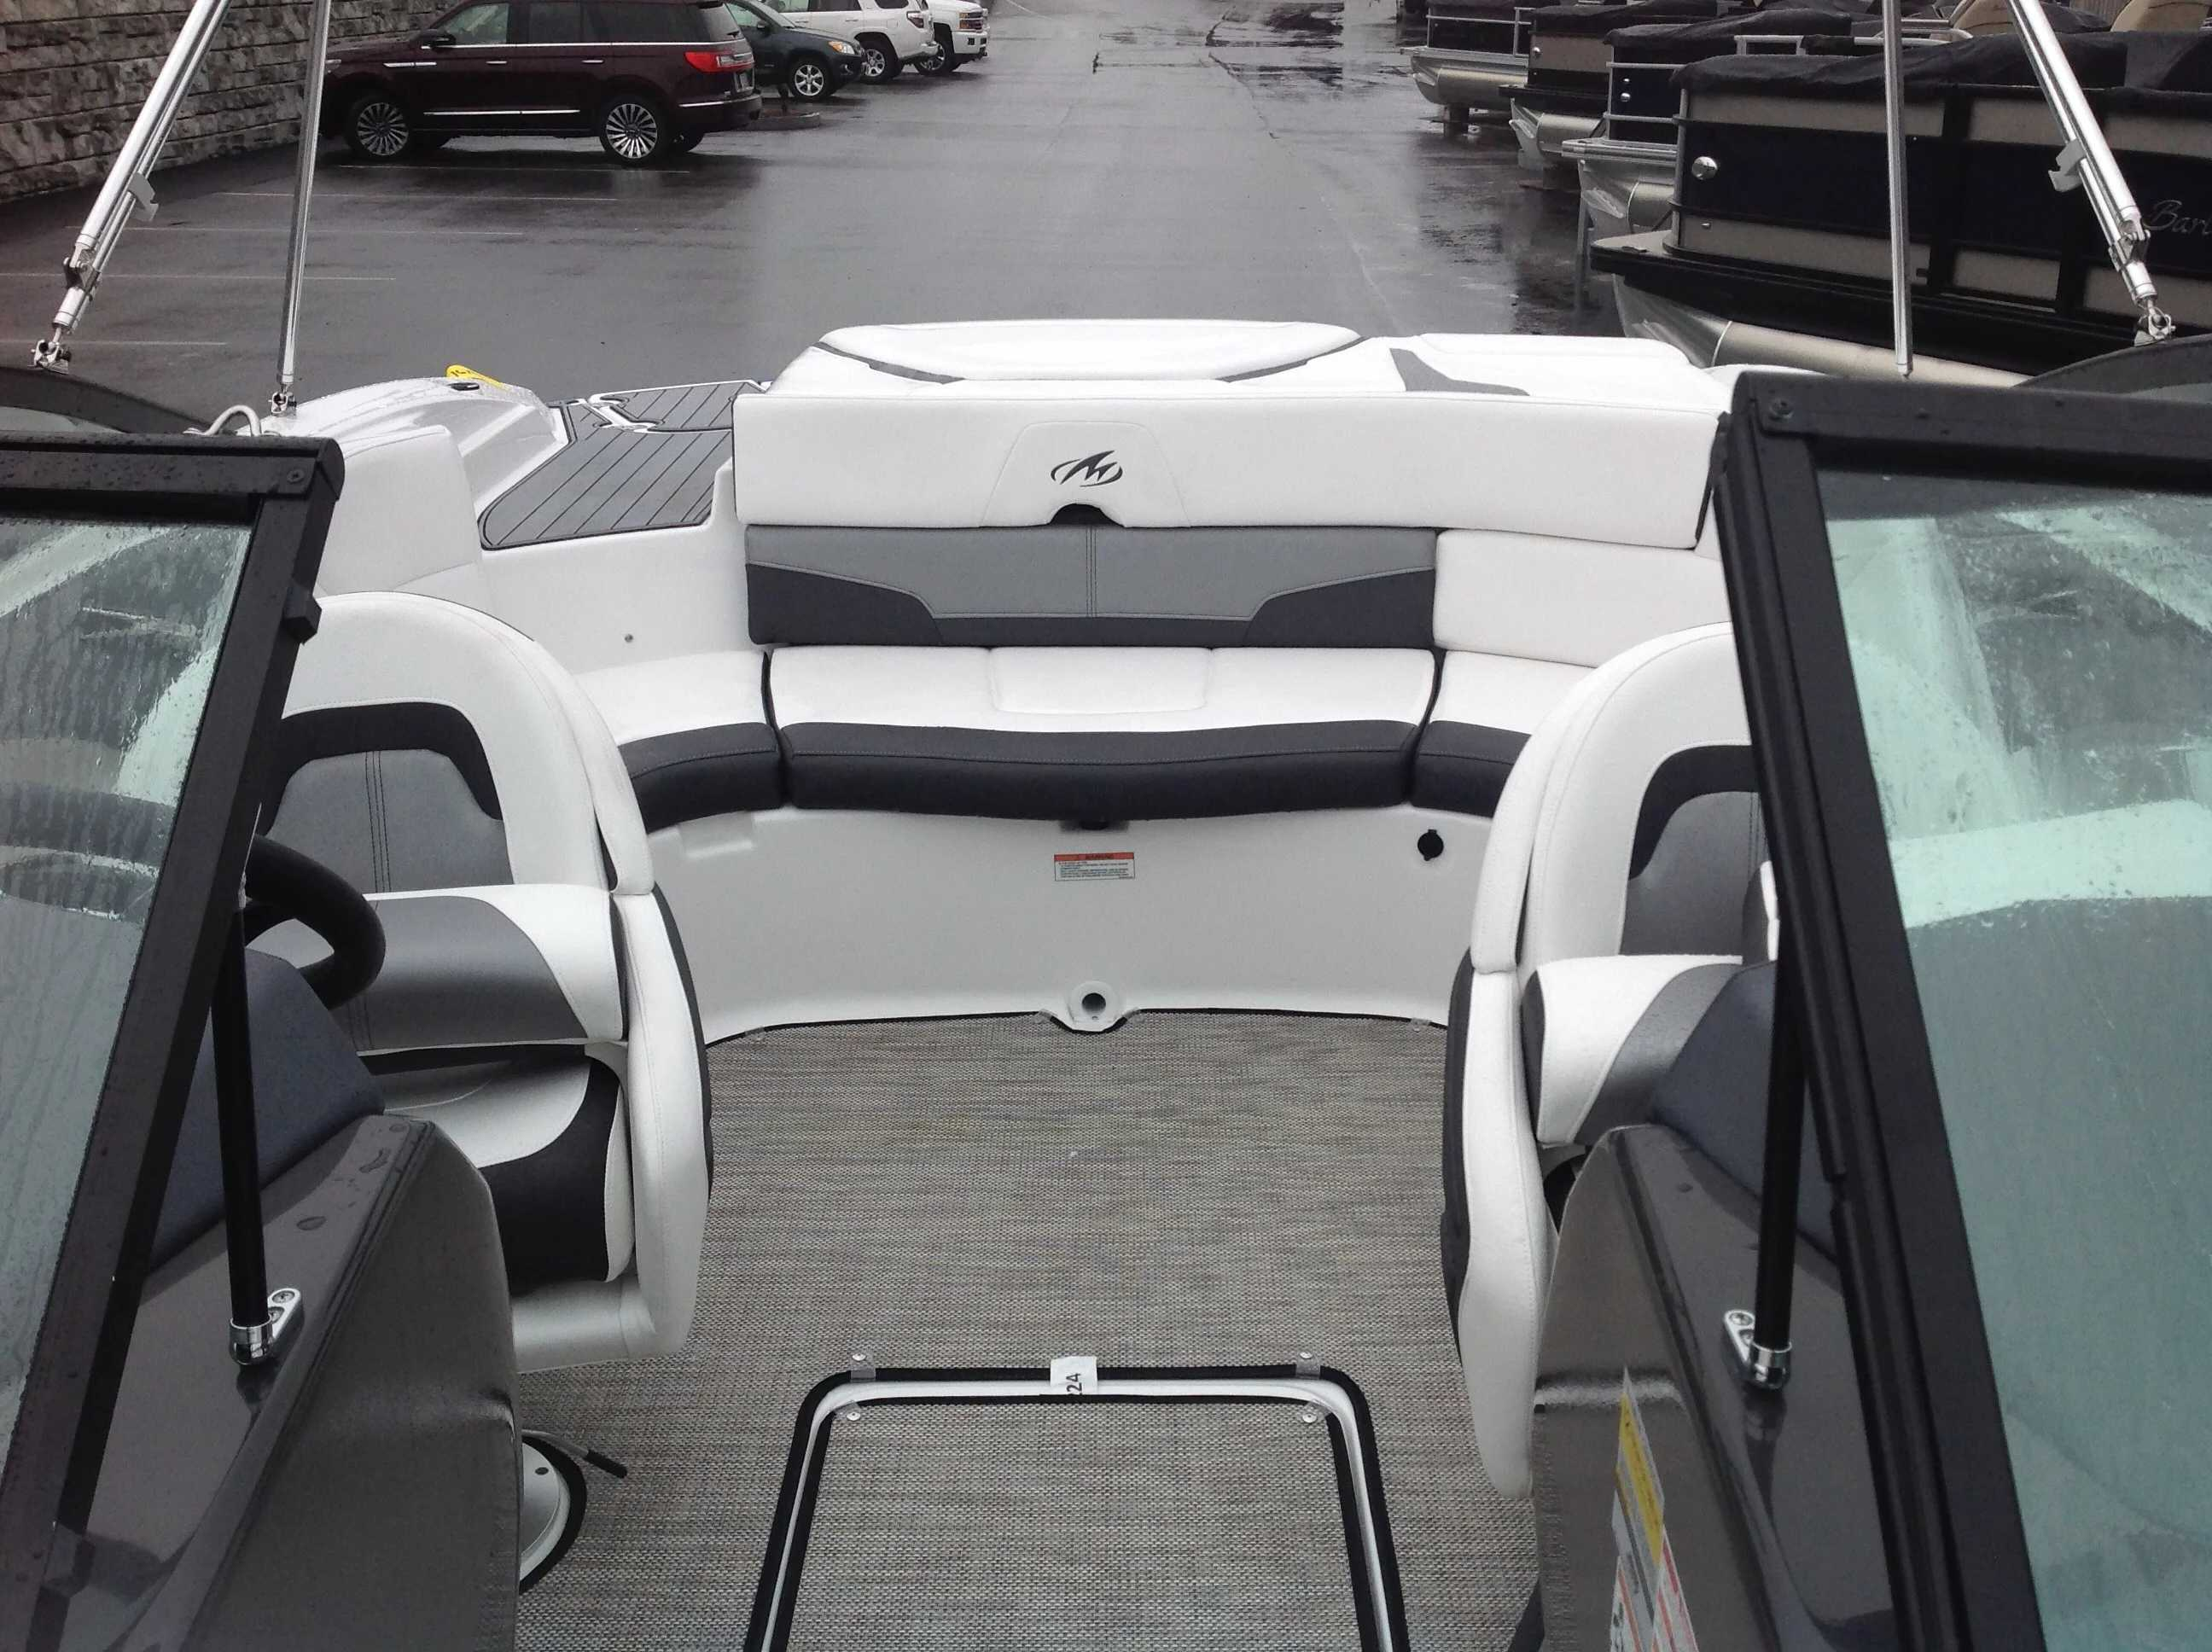 2021 Monterey boat for sale, model of the boat is 224FS & Image # 5 of 10